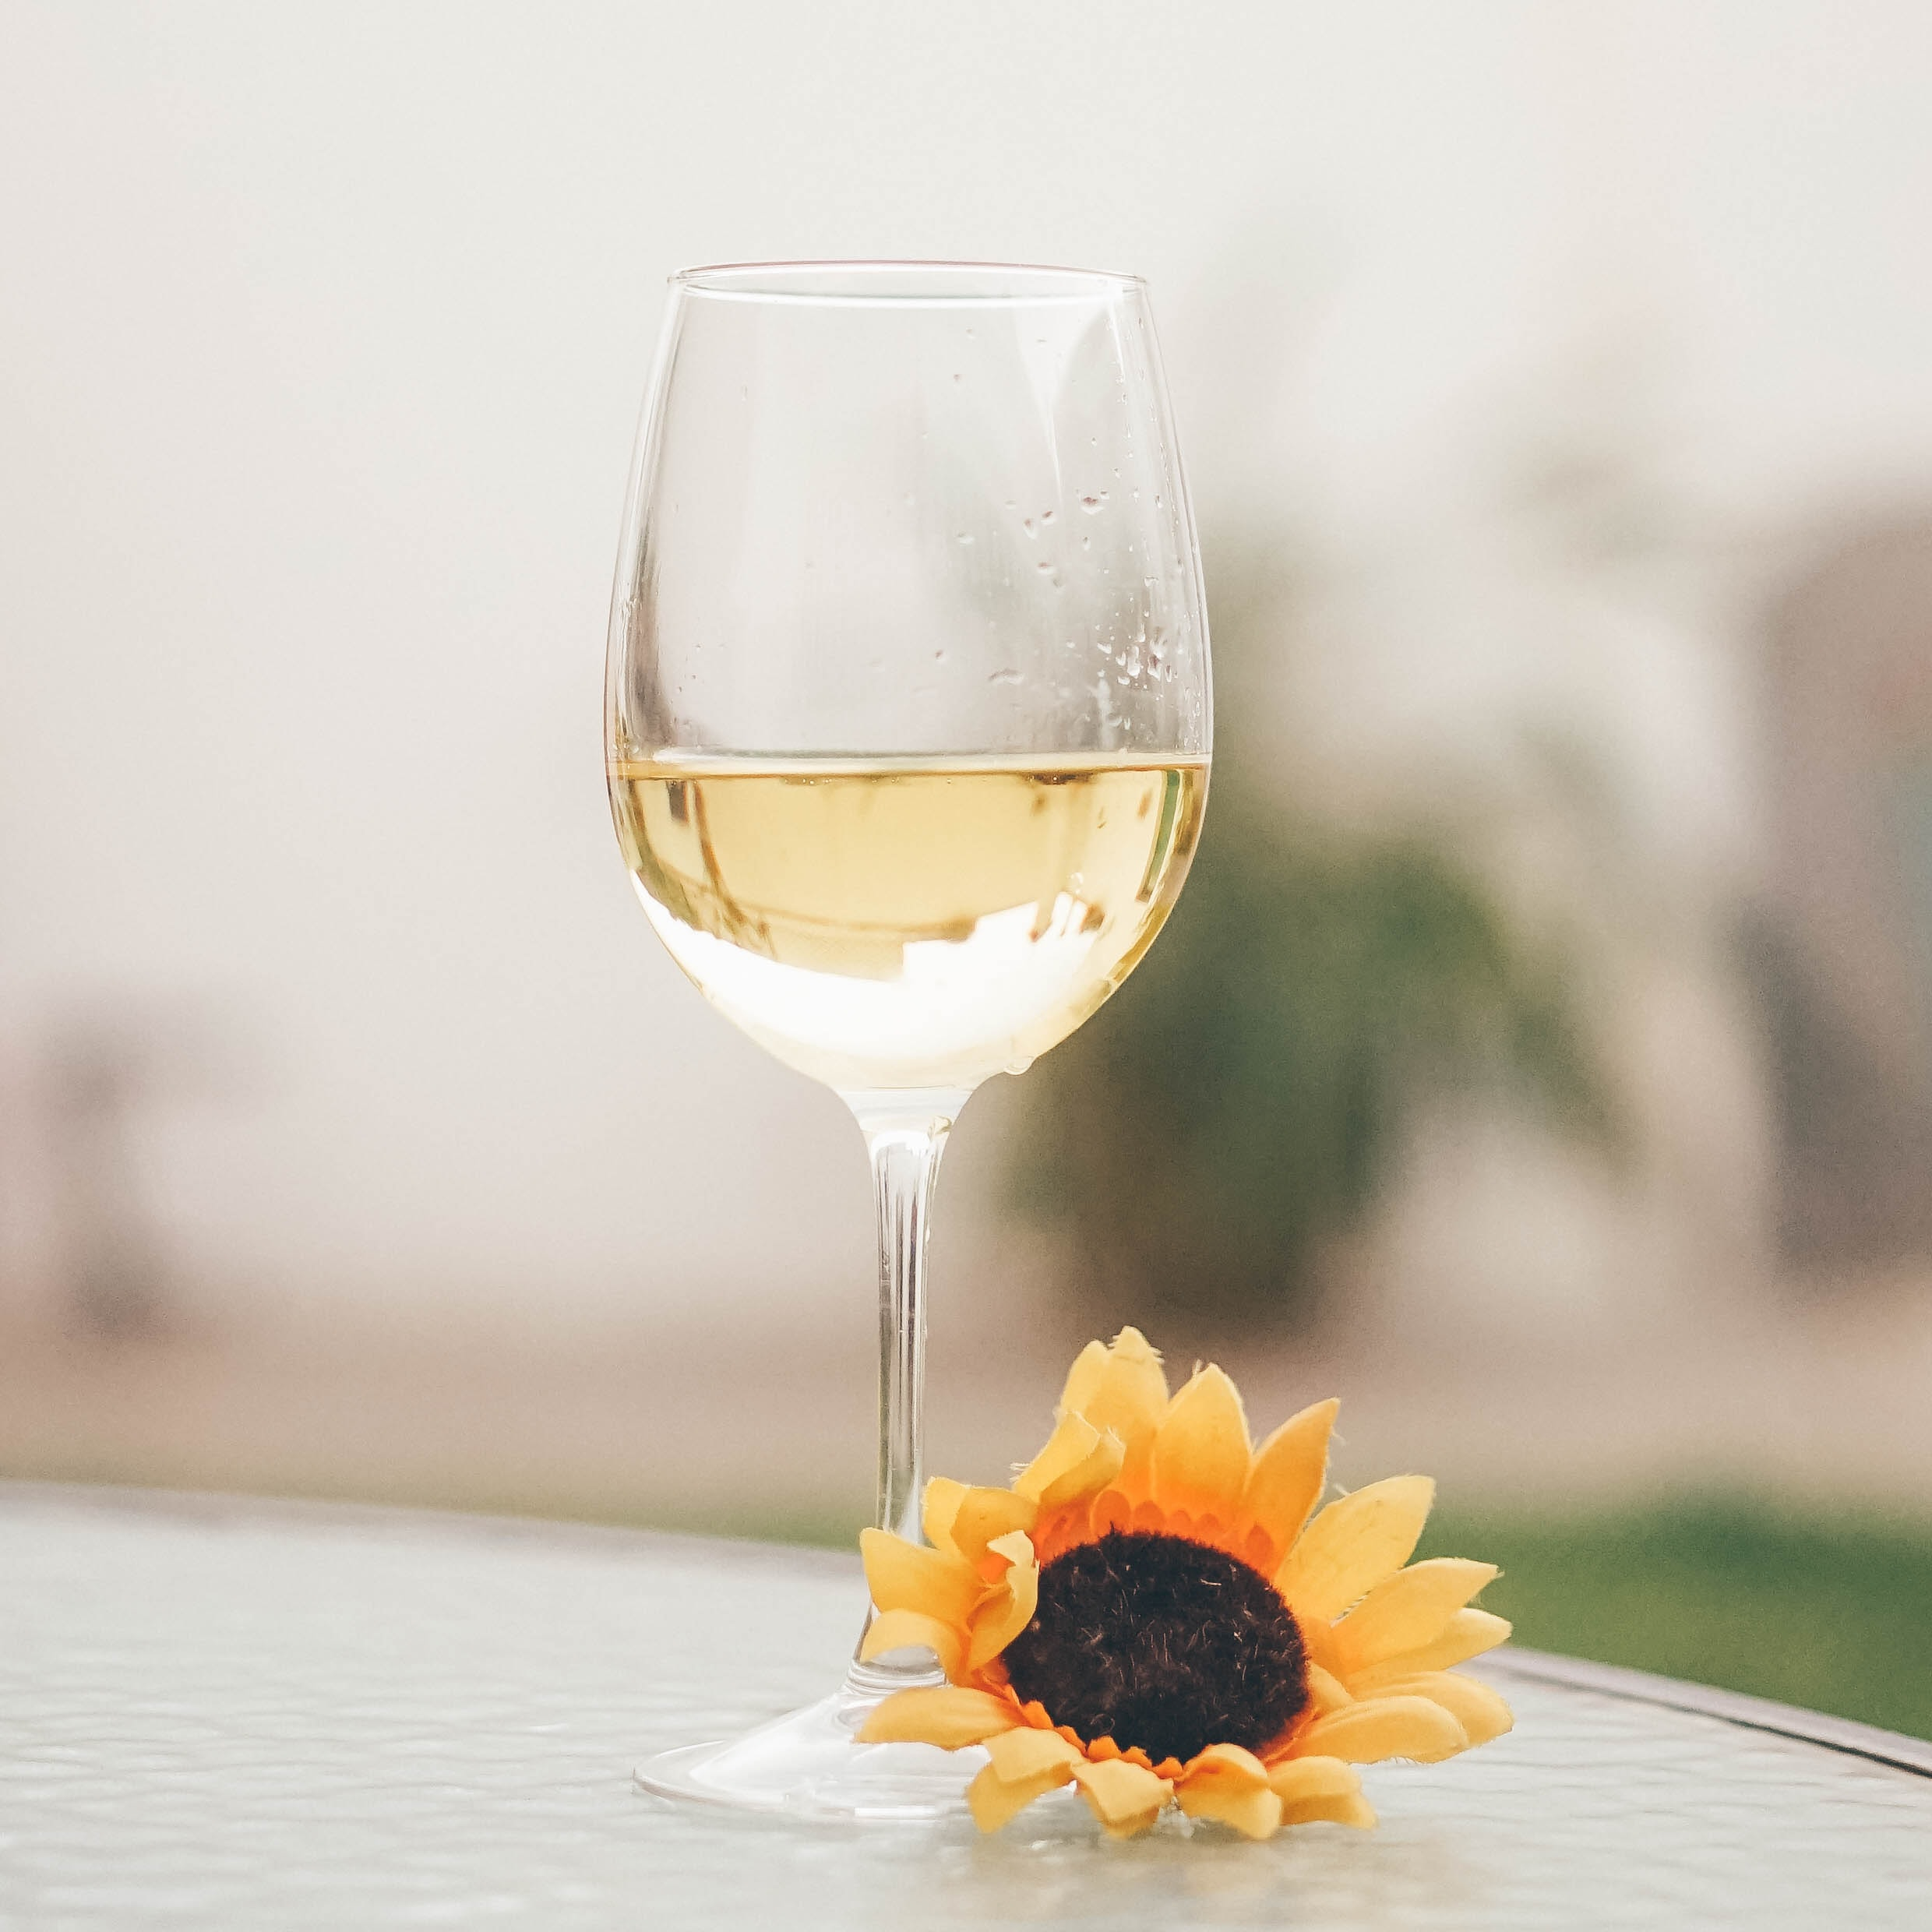 A glass of chardonnay wine near a flower